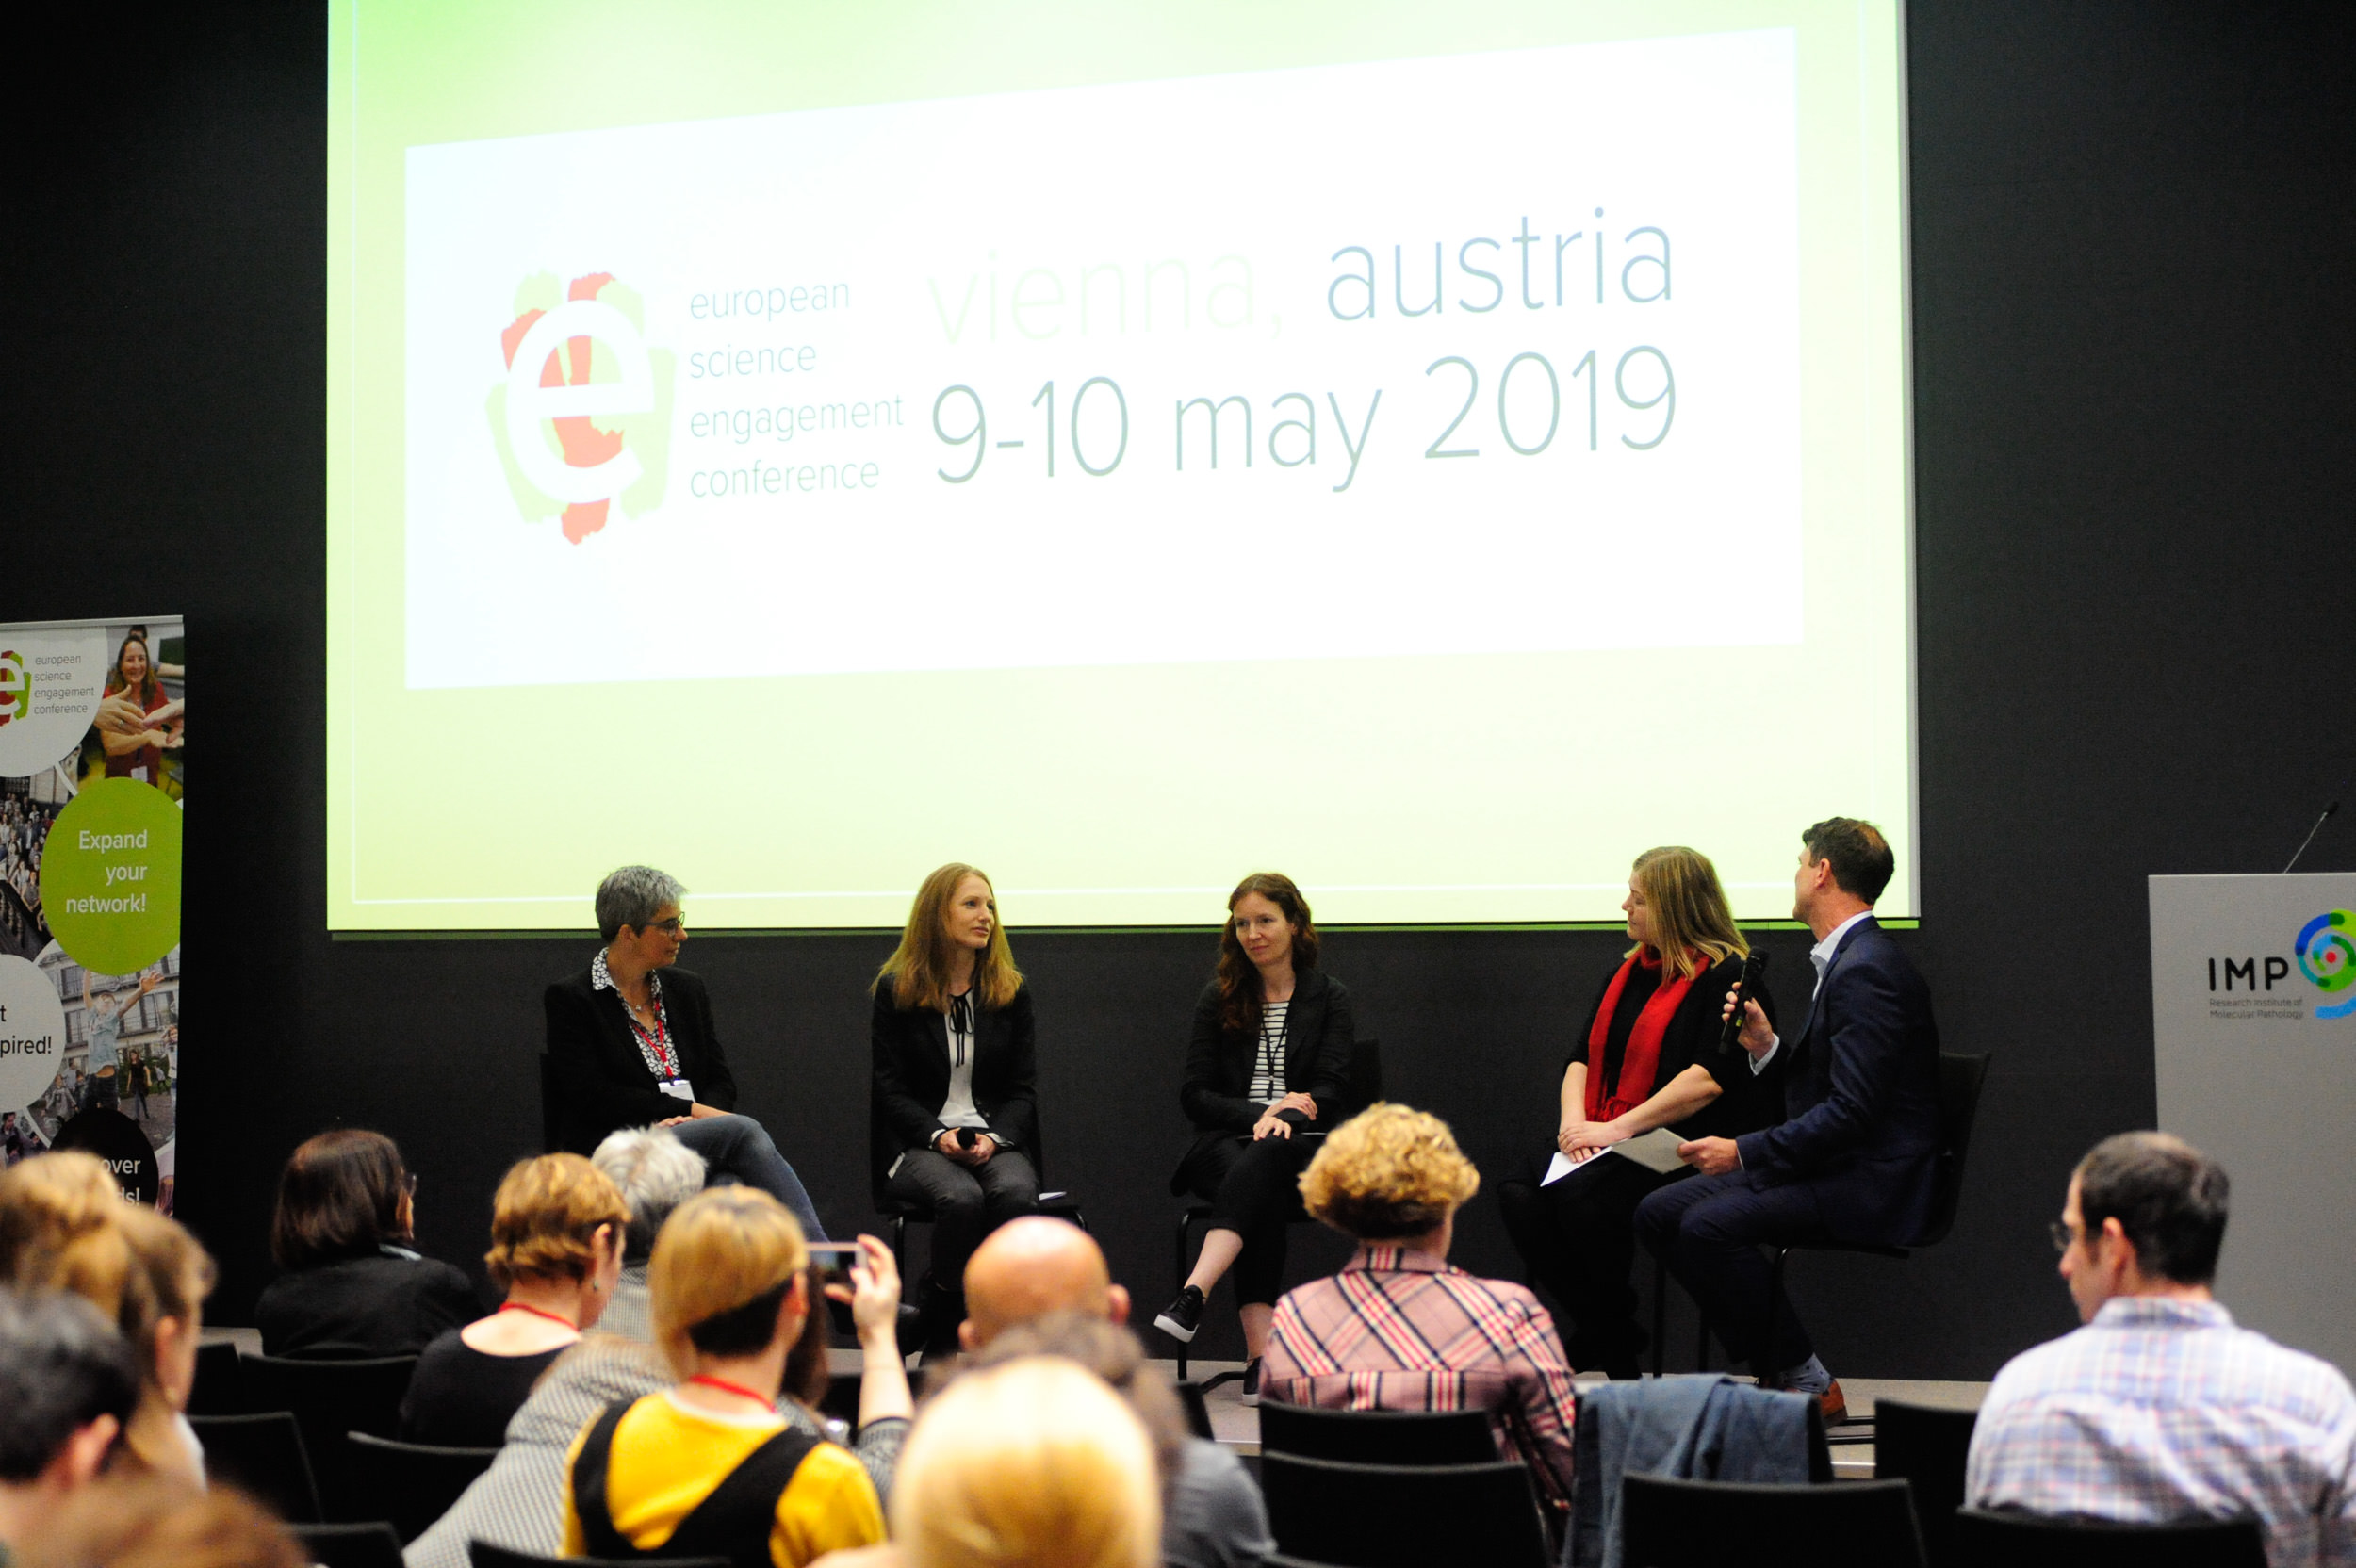 Impressions of #EUSEA19 Day 1